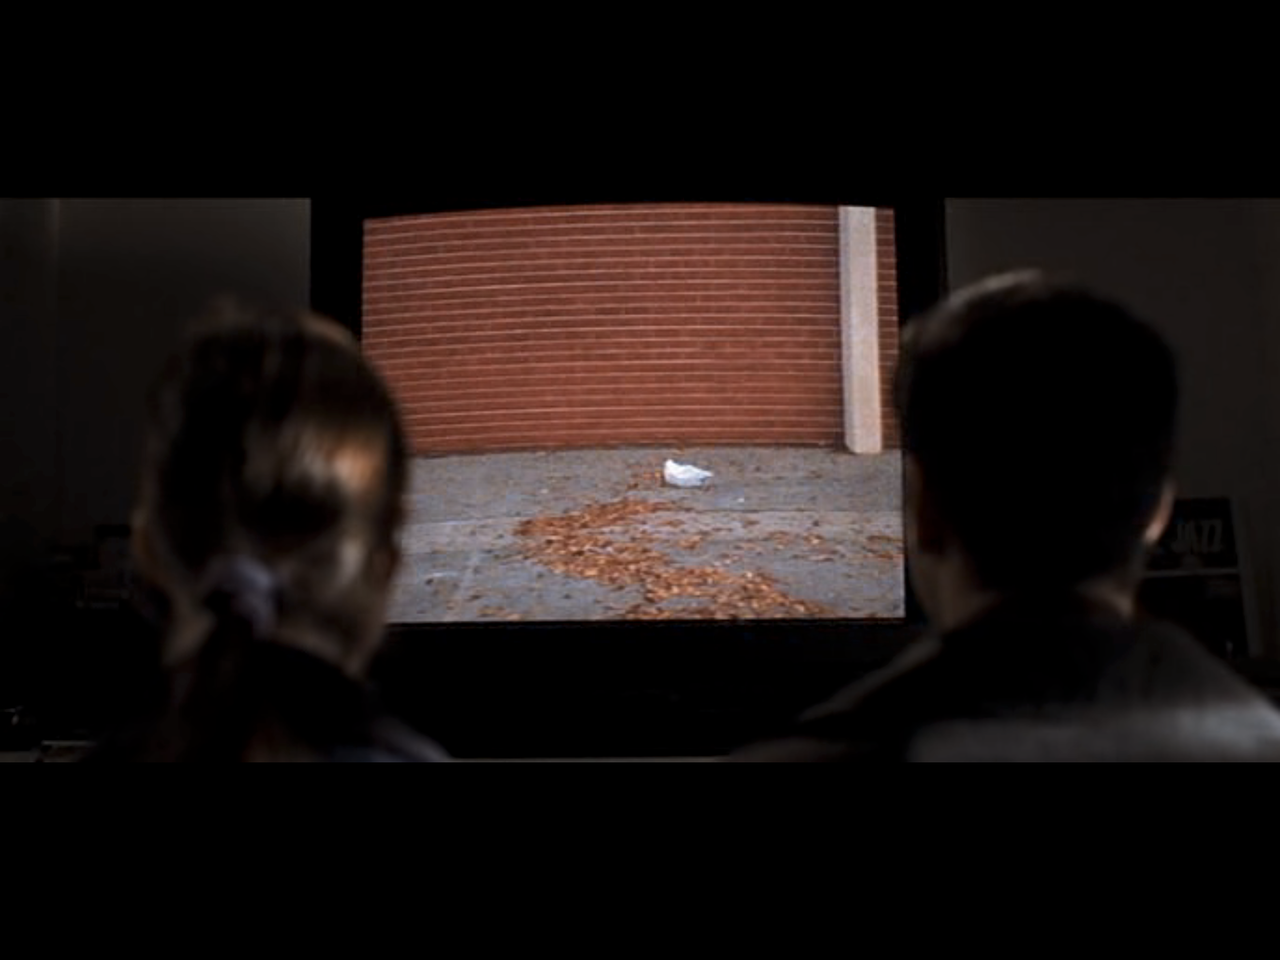 From American Beauty. What a greatmovie!